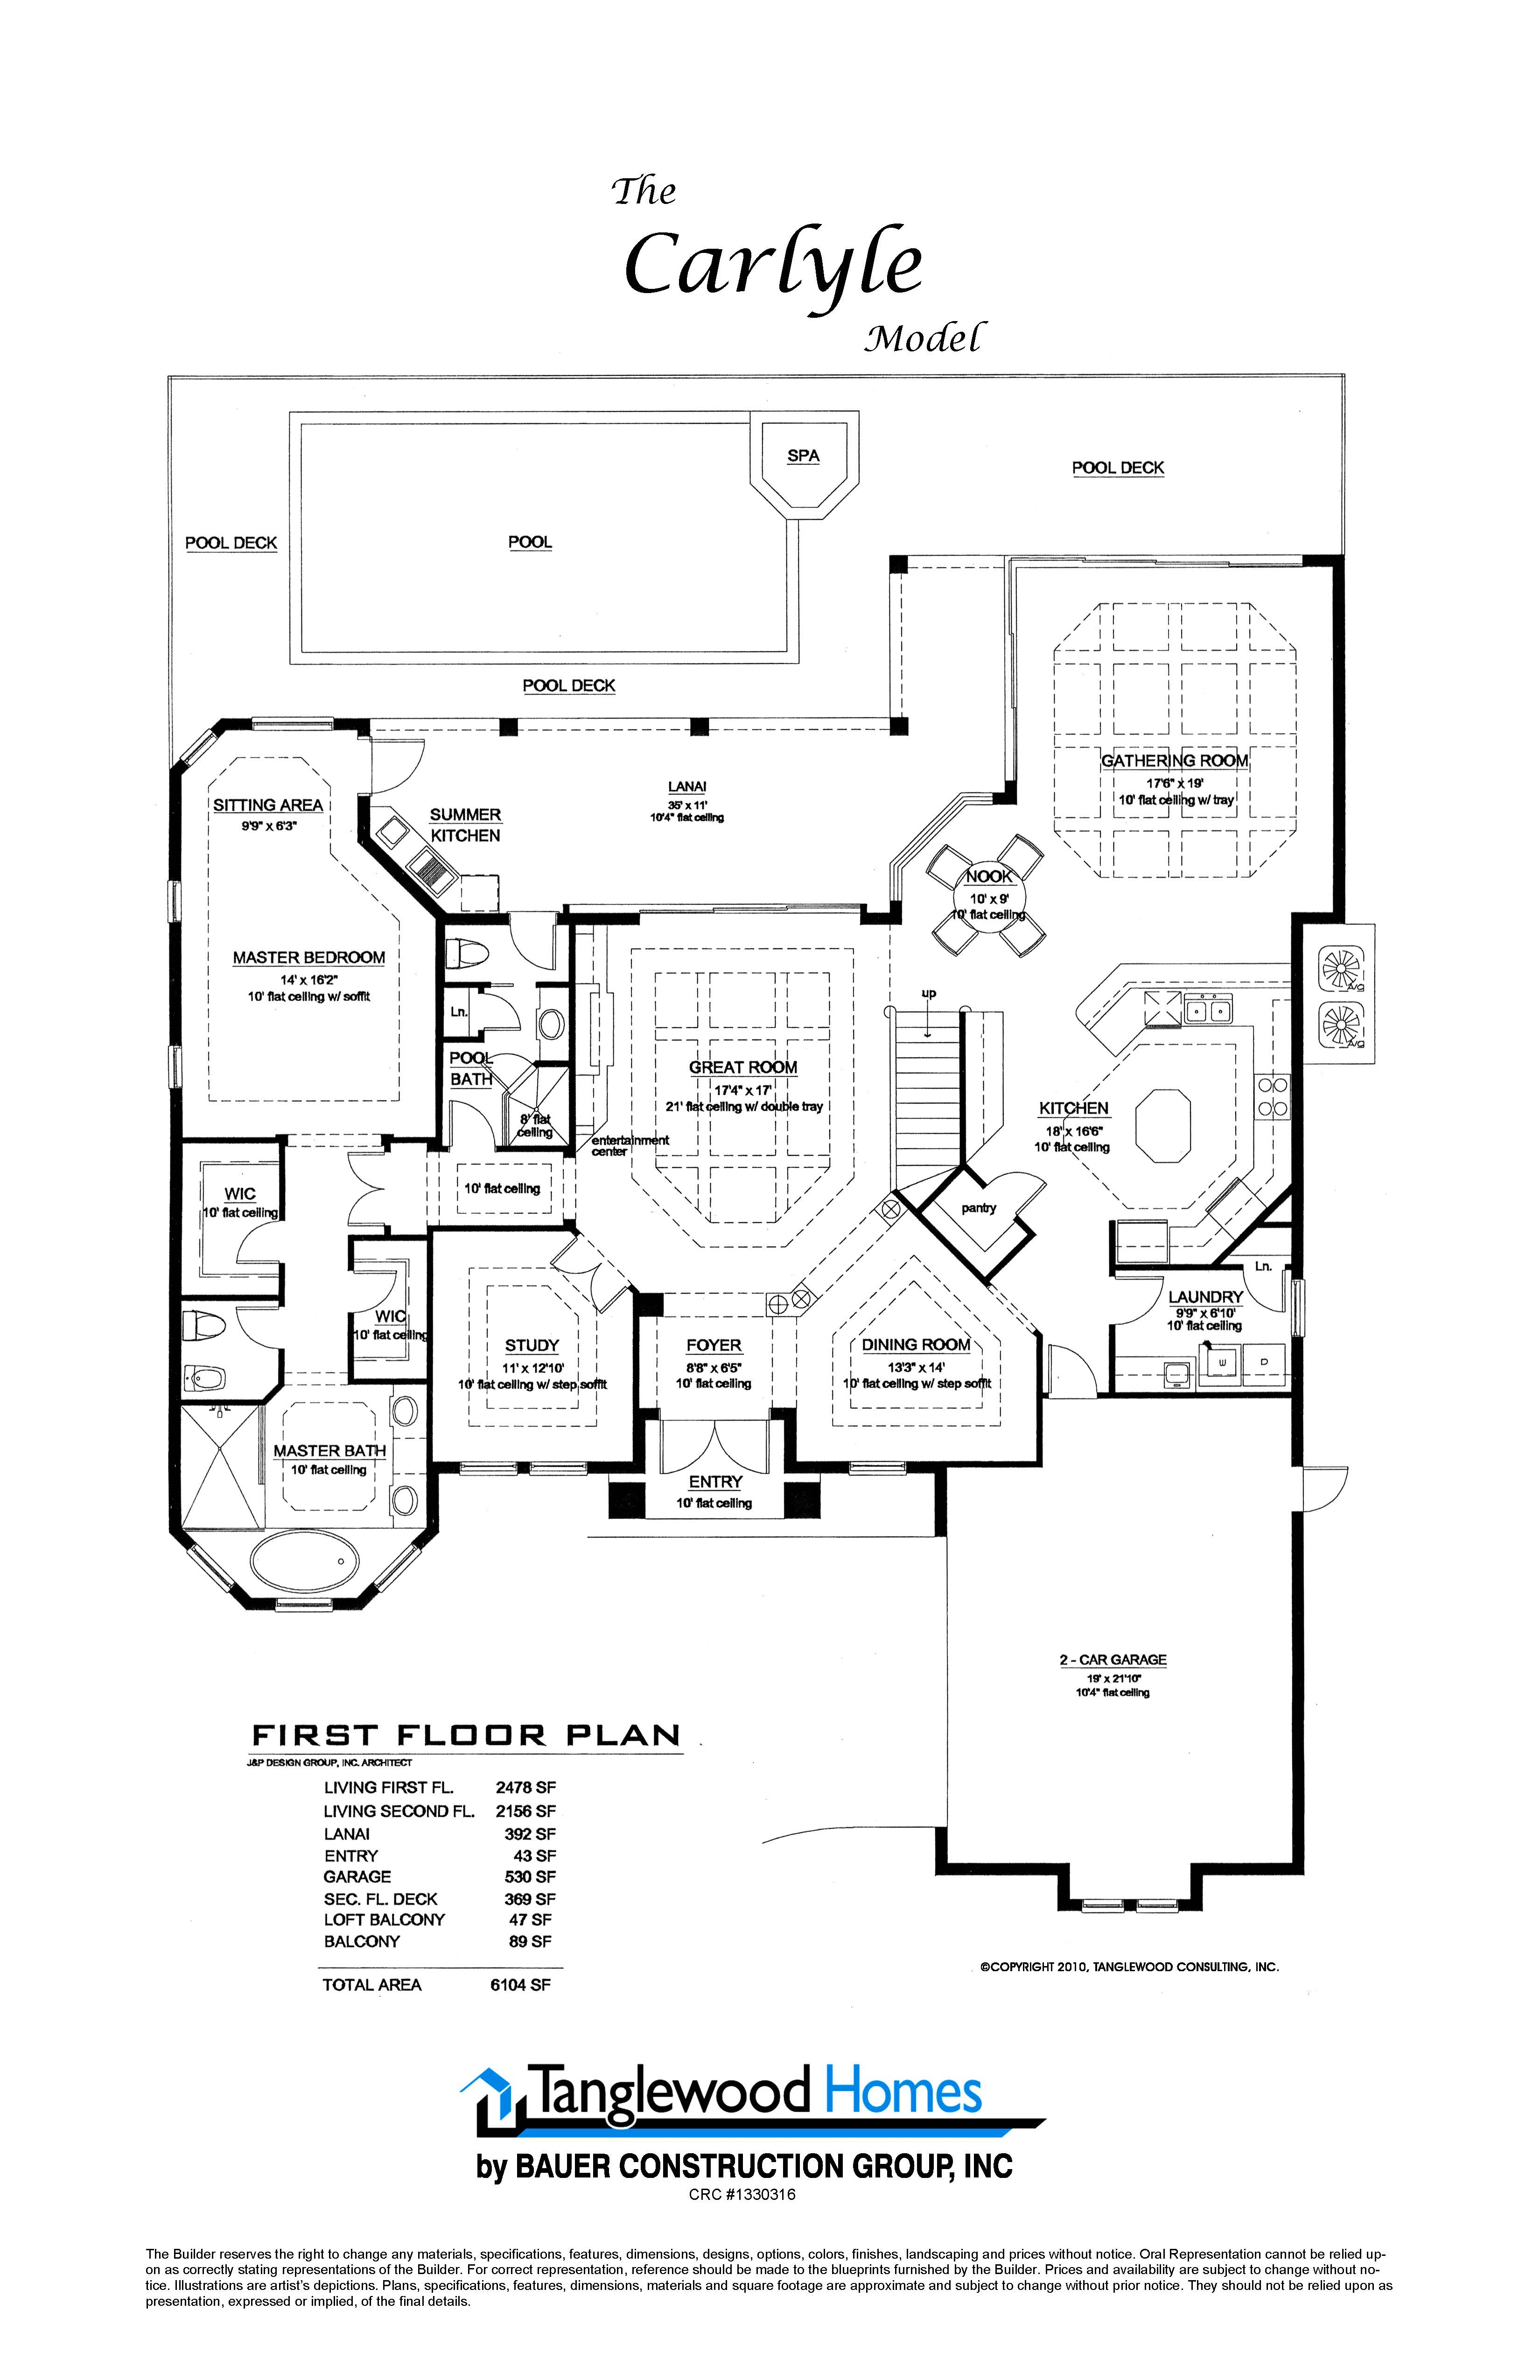 Home Construction Plans Carlyle Ft Myers Fl